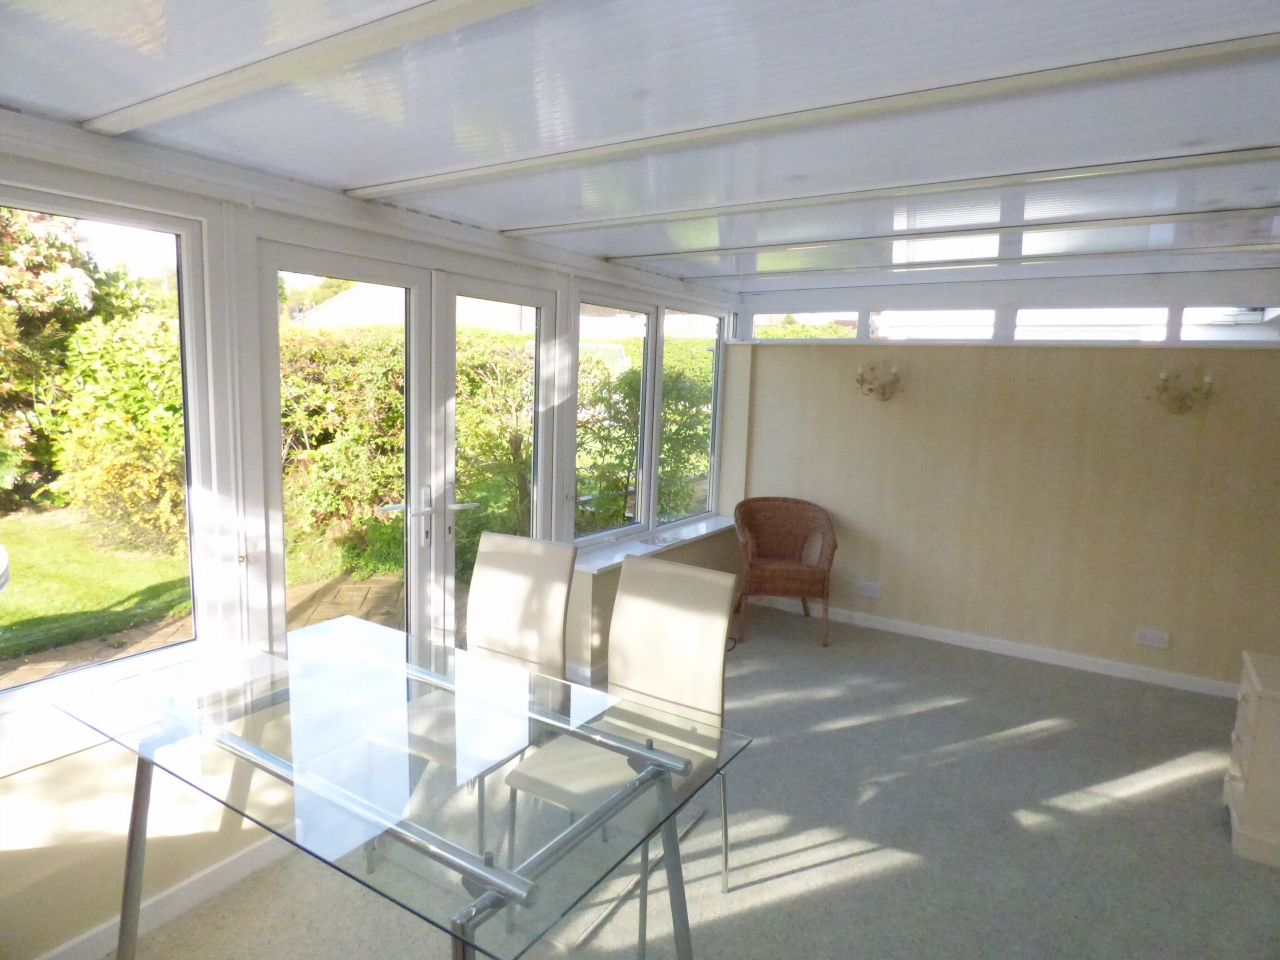 2 Bedroom Detached Bungalow Bungalow For Sale - Image 4